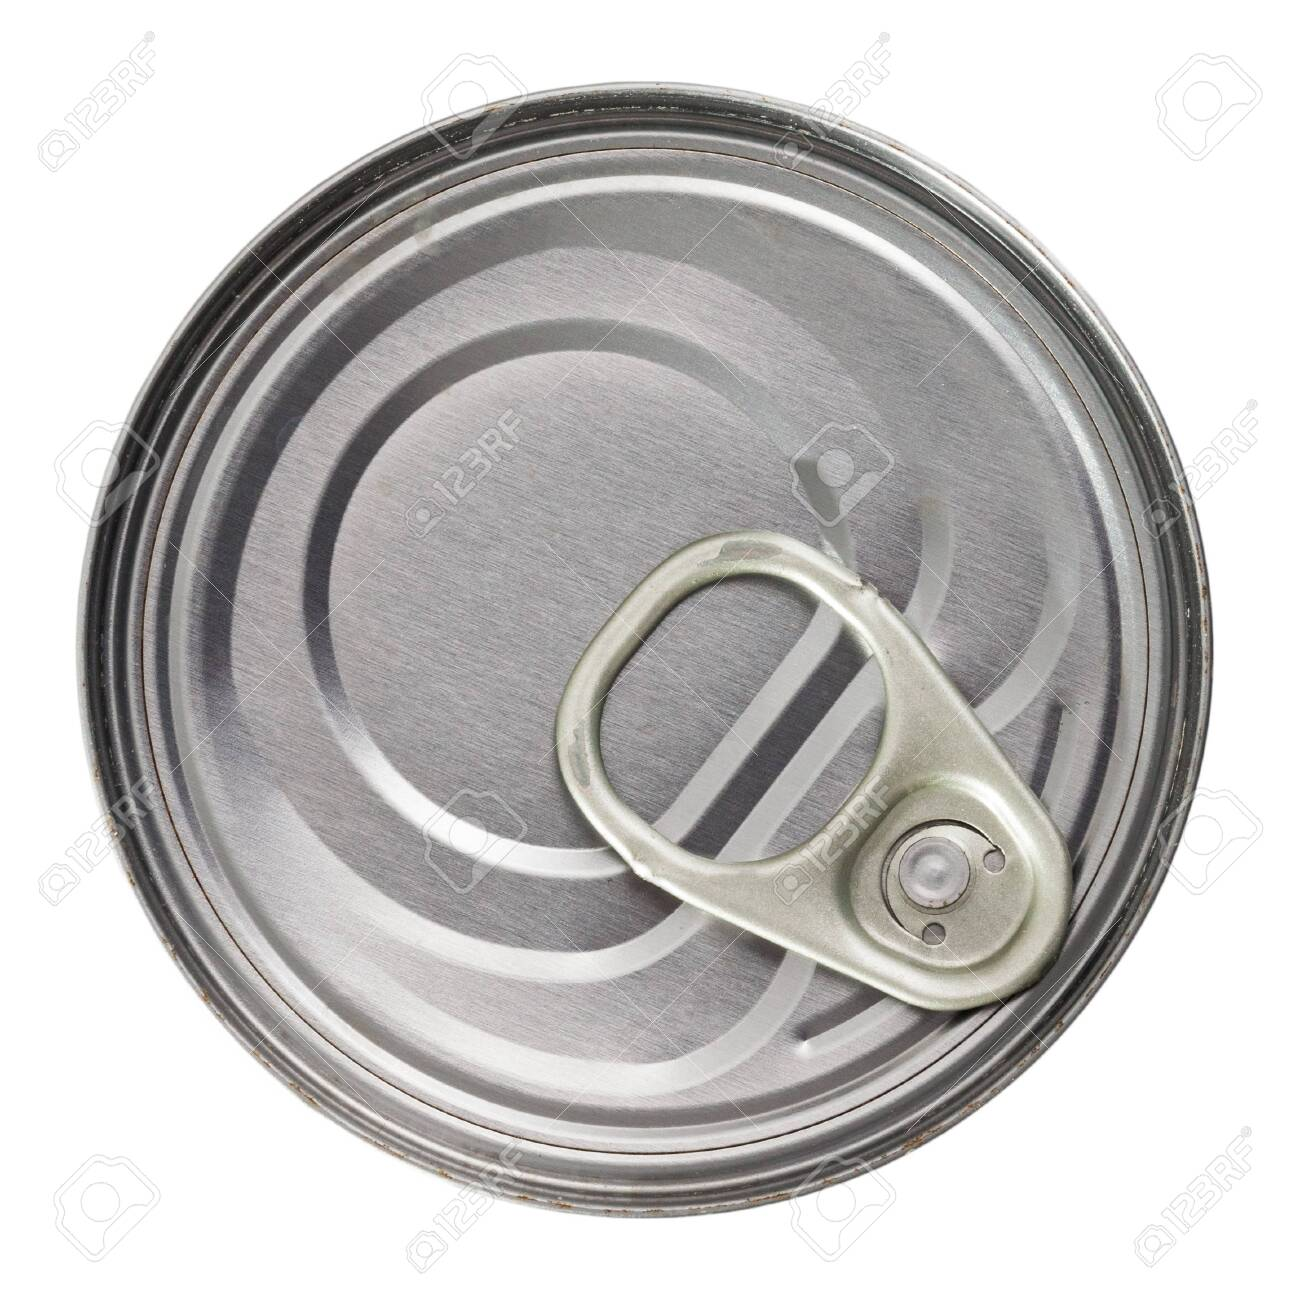 Silver tin can closeup. Isolated over white background - 129677456